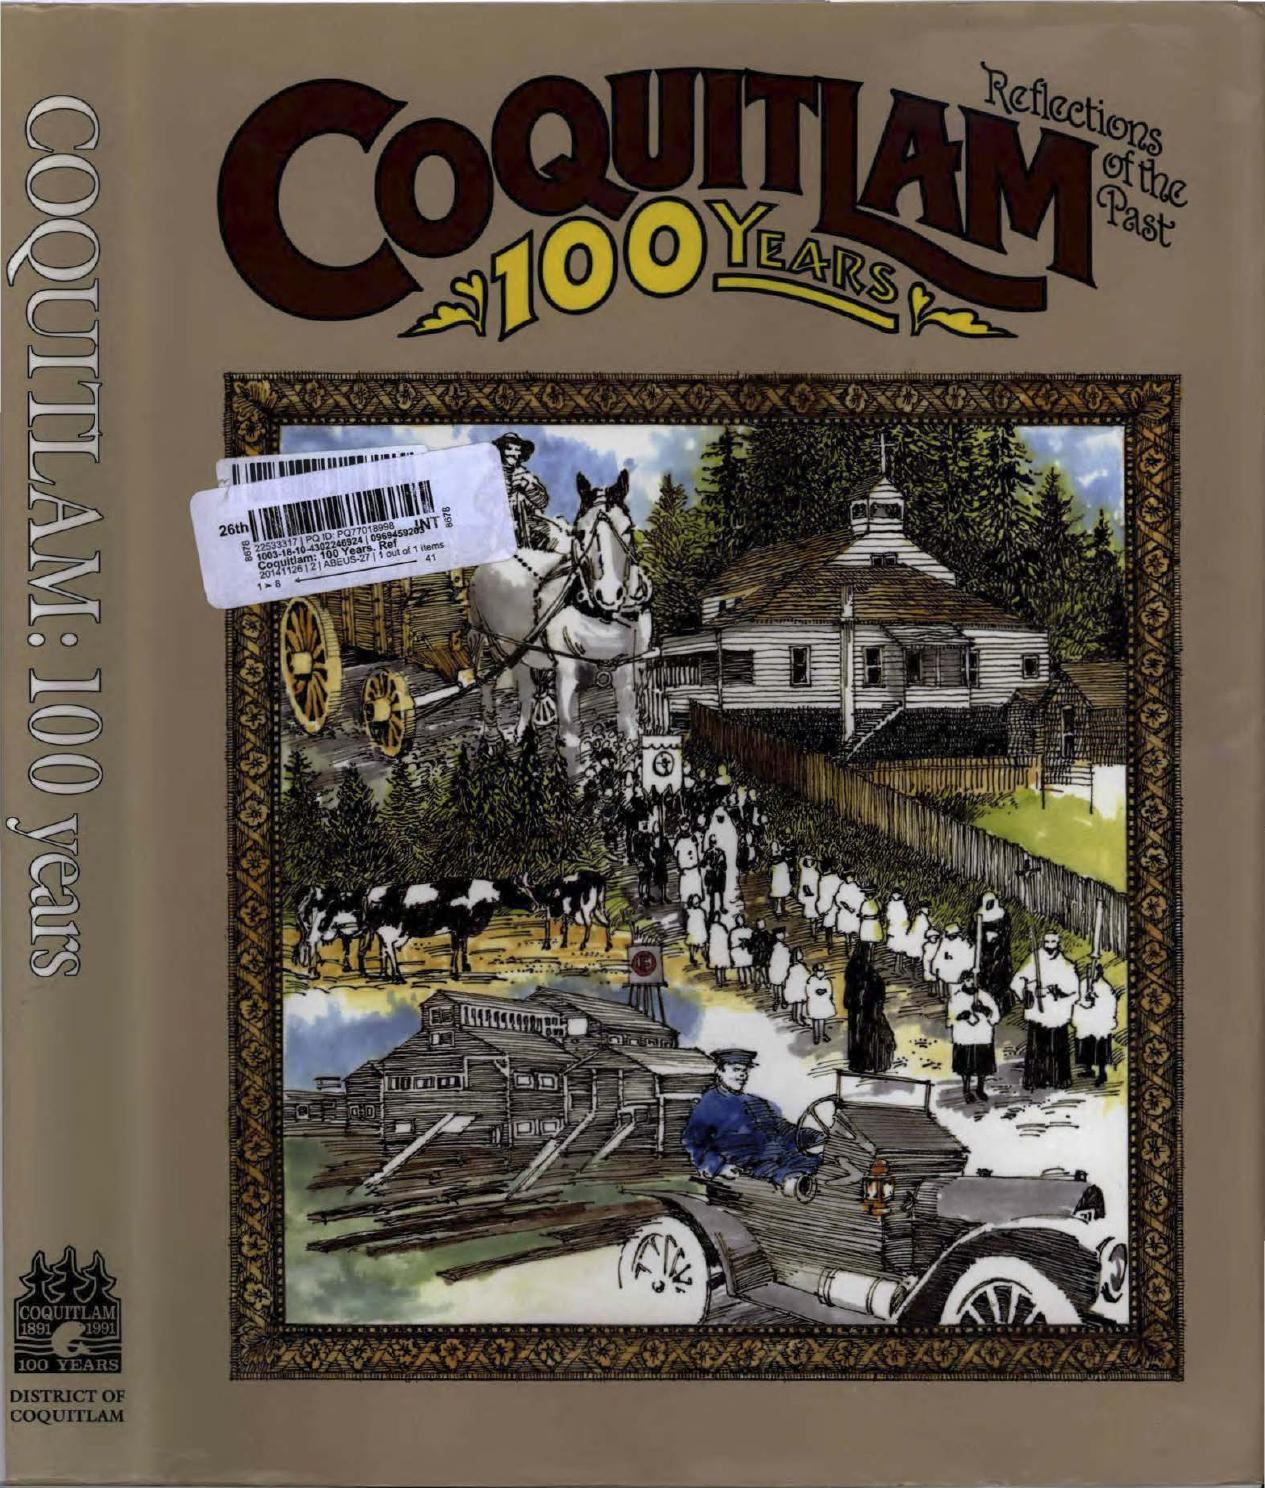 8fbb6e0ca4b4 Coquitlam 100 years reflections of the past by City of Coquitlam - issuu